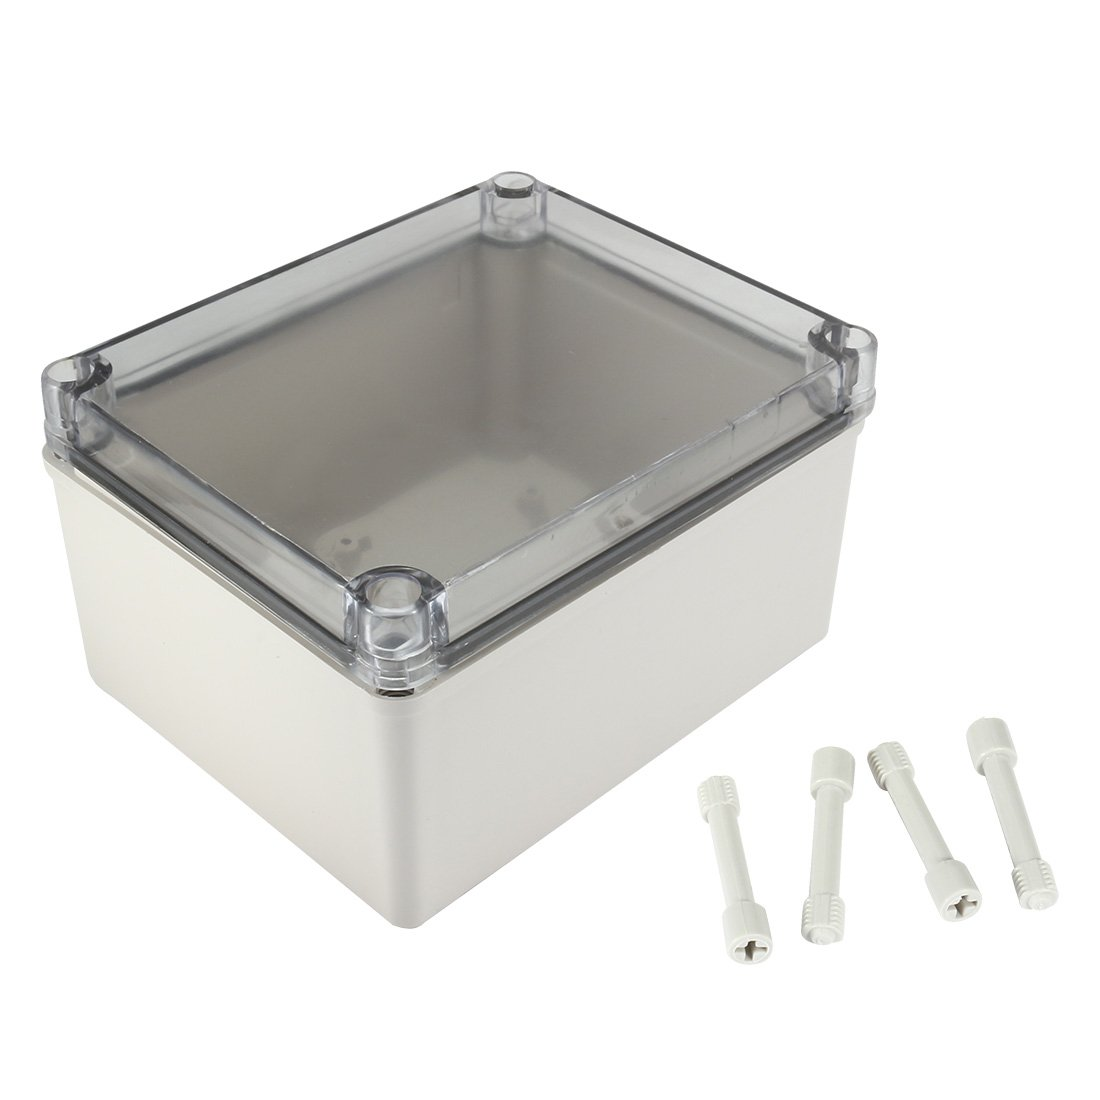 """uxcell 5.5""""x6.7""""x3.7""""(140mmx170mmx95mm)ABS Junction Box Universal Project Enclosure w PC Transparent Cover"""